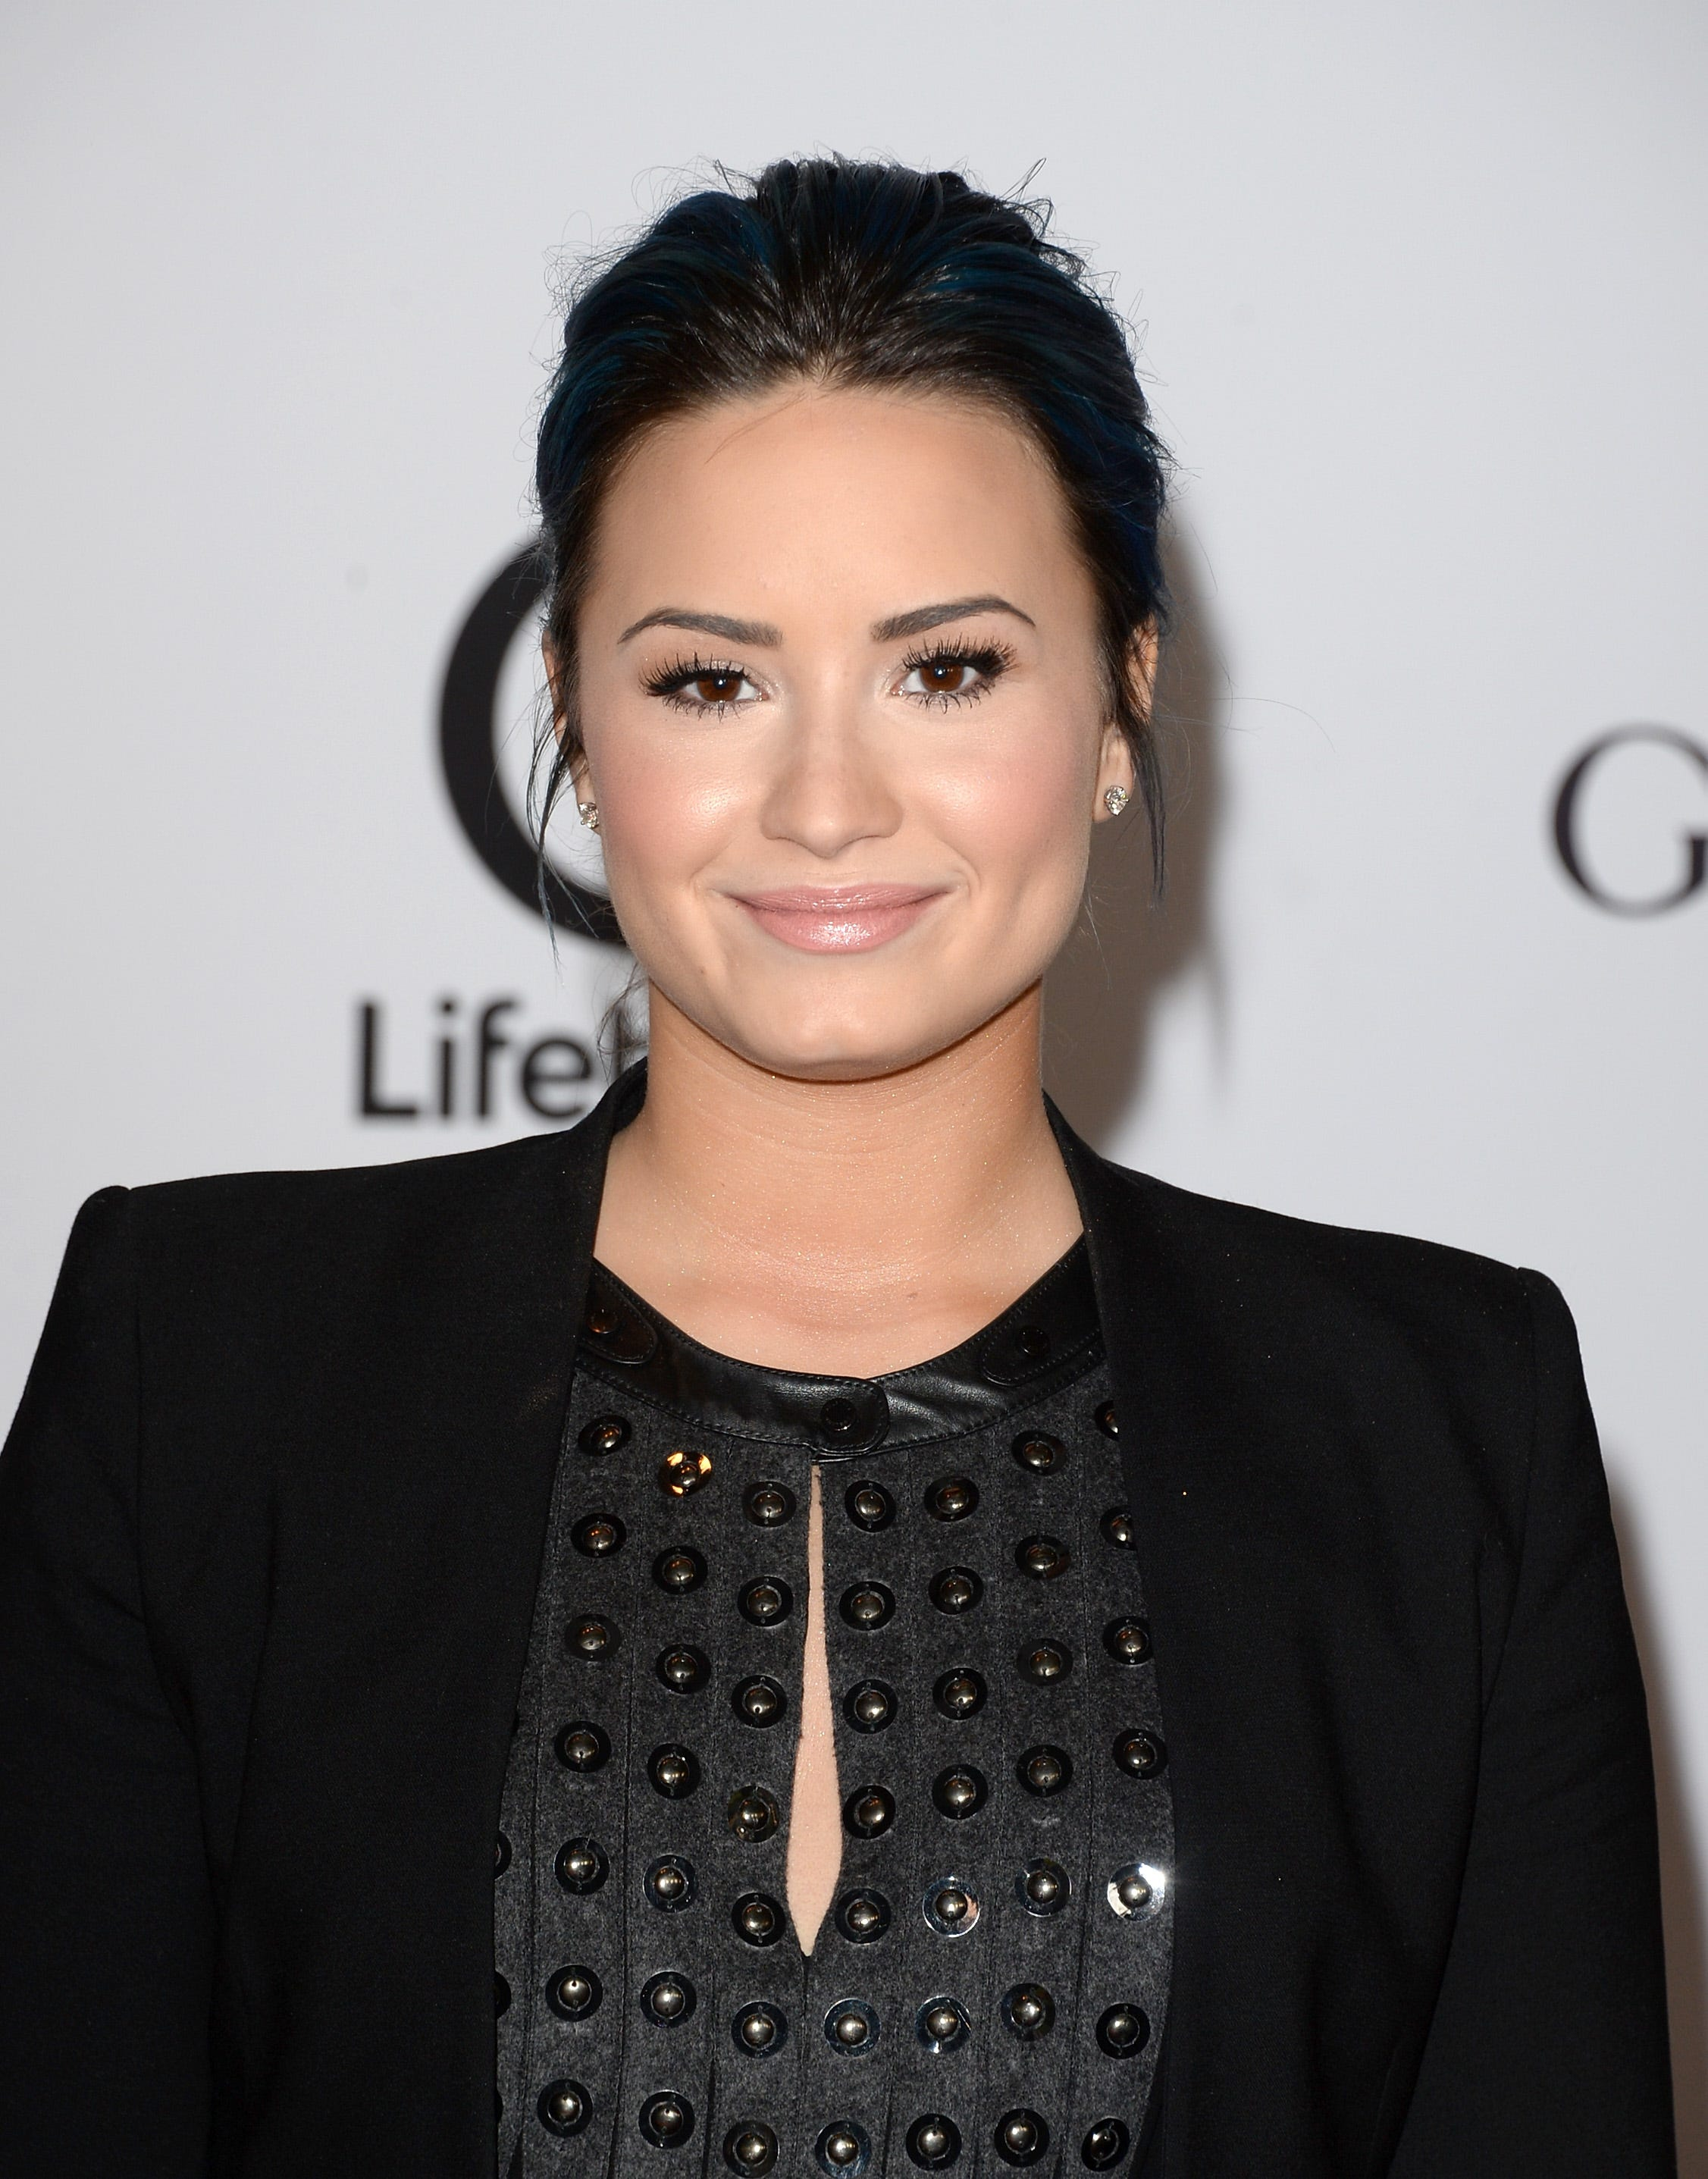 Demi Lovato  sc 1 st  USA Today & Demi Lovato talks about her messy life as a drug addict